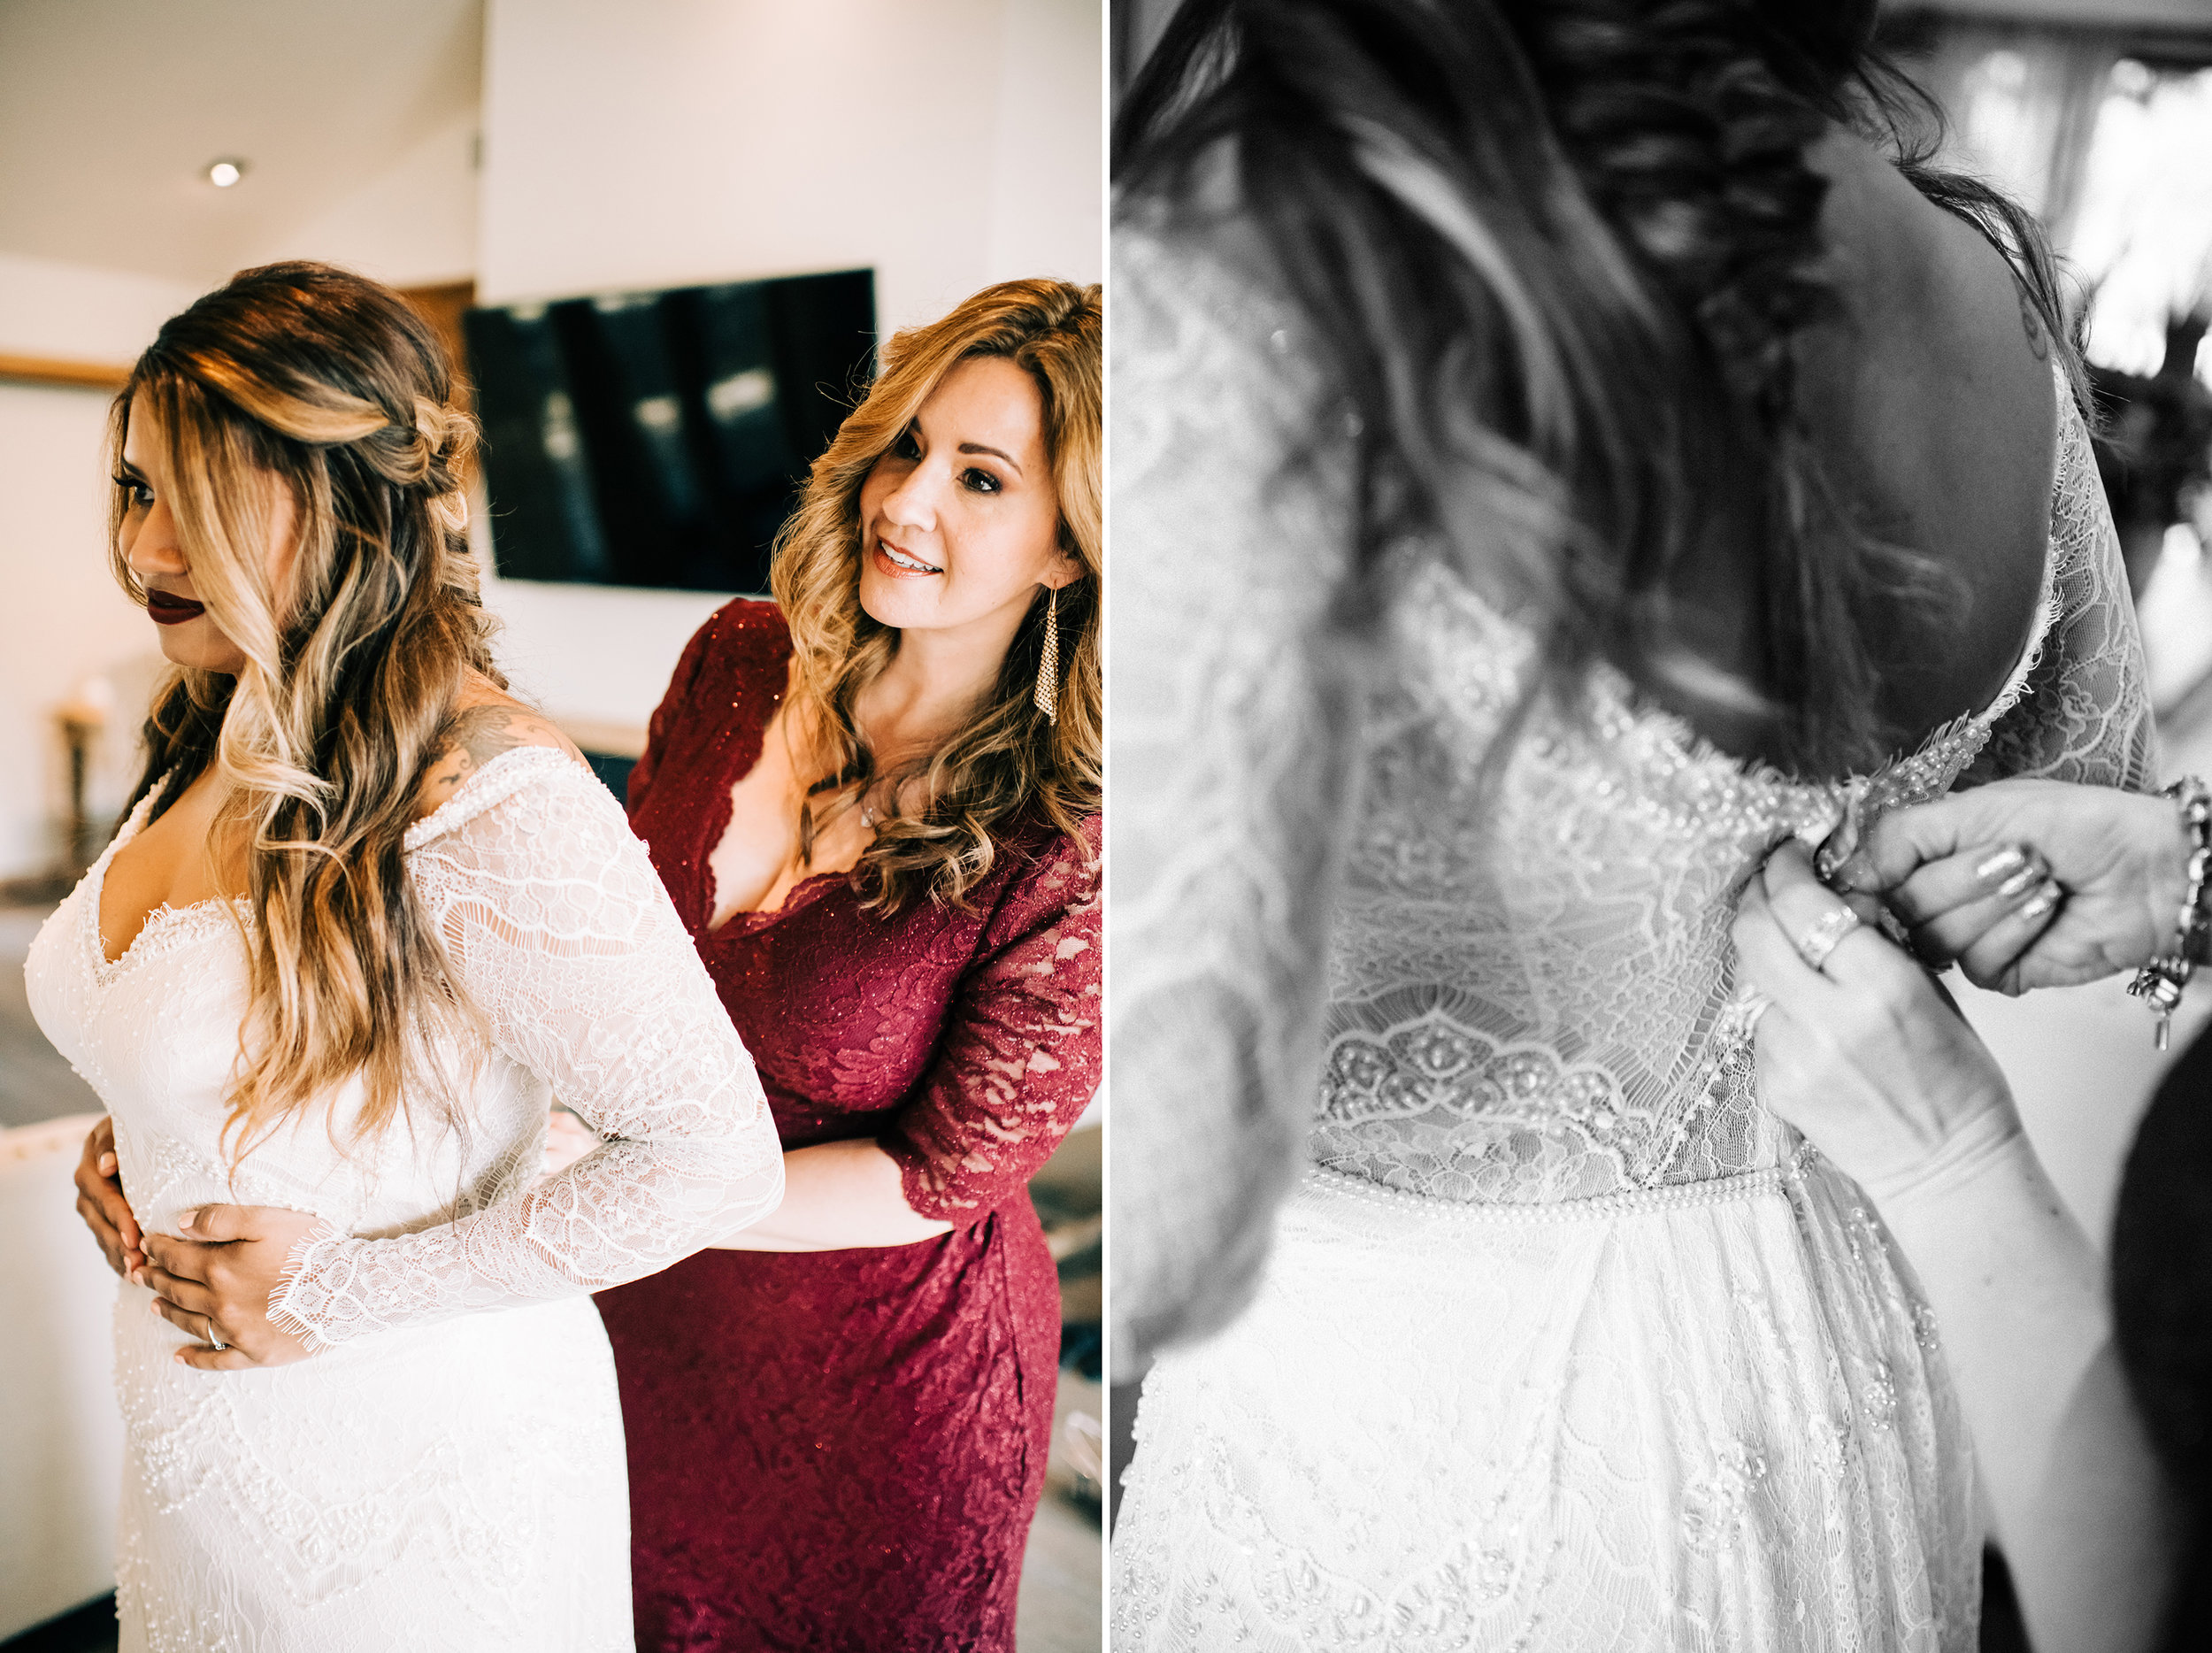 bay area nontraditional wedding photographer southern california boho wedding love light magic san francisco oakland northern california-117.jpg